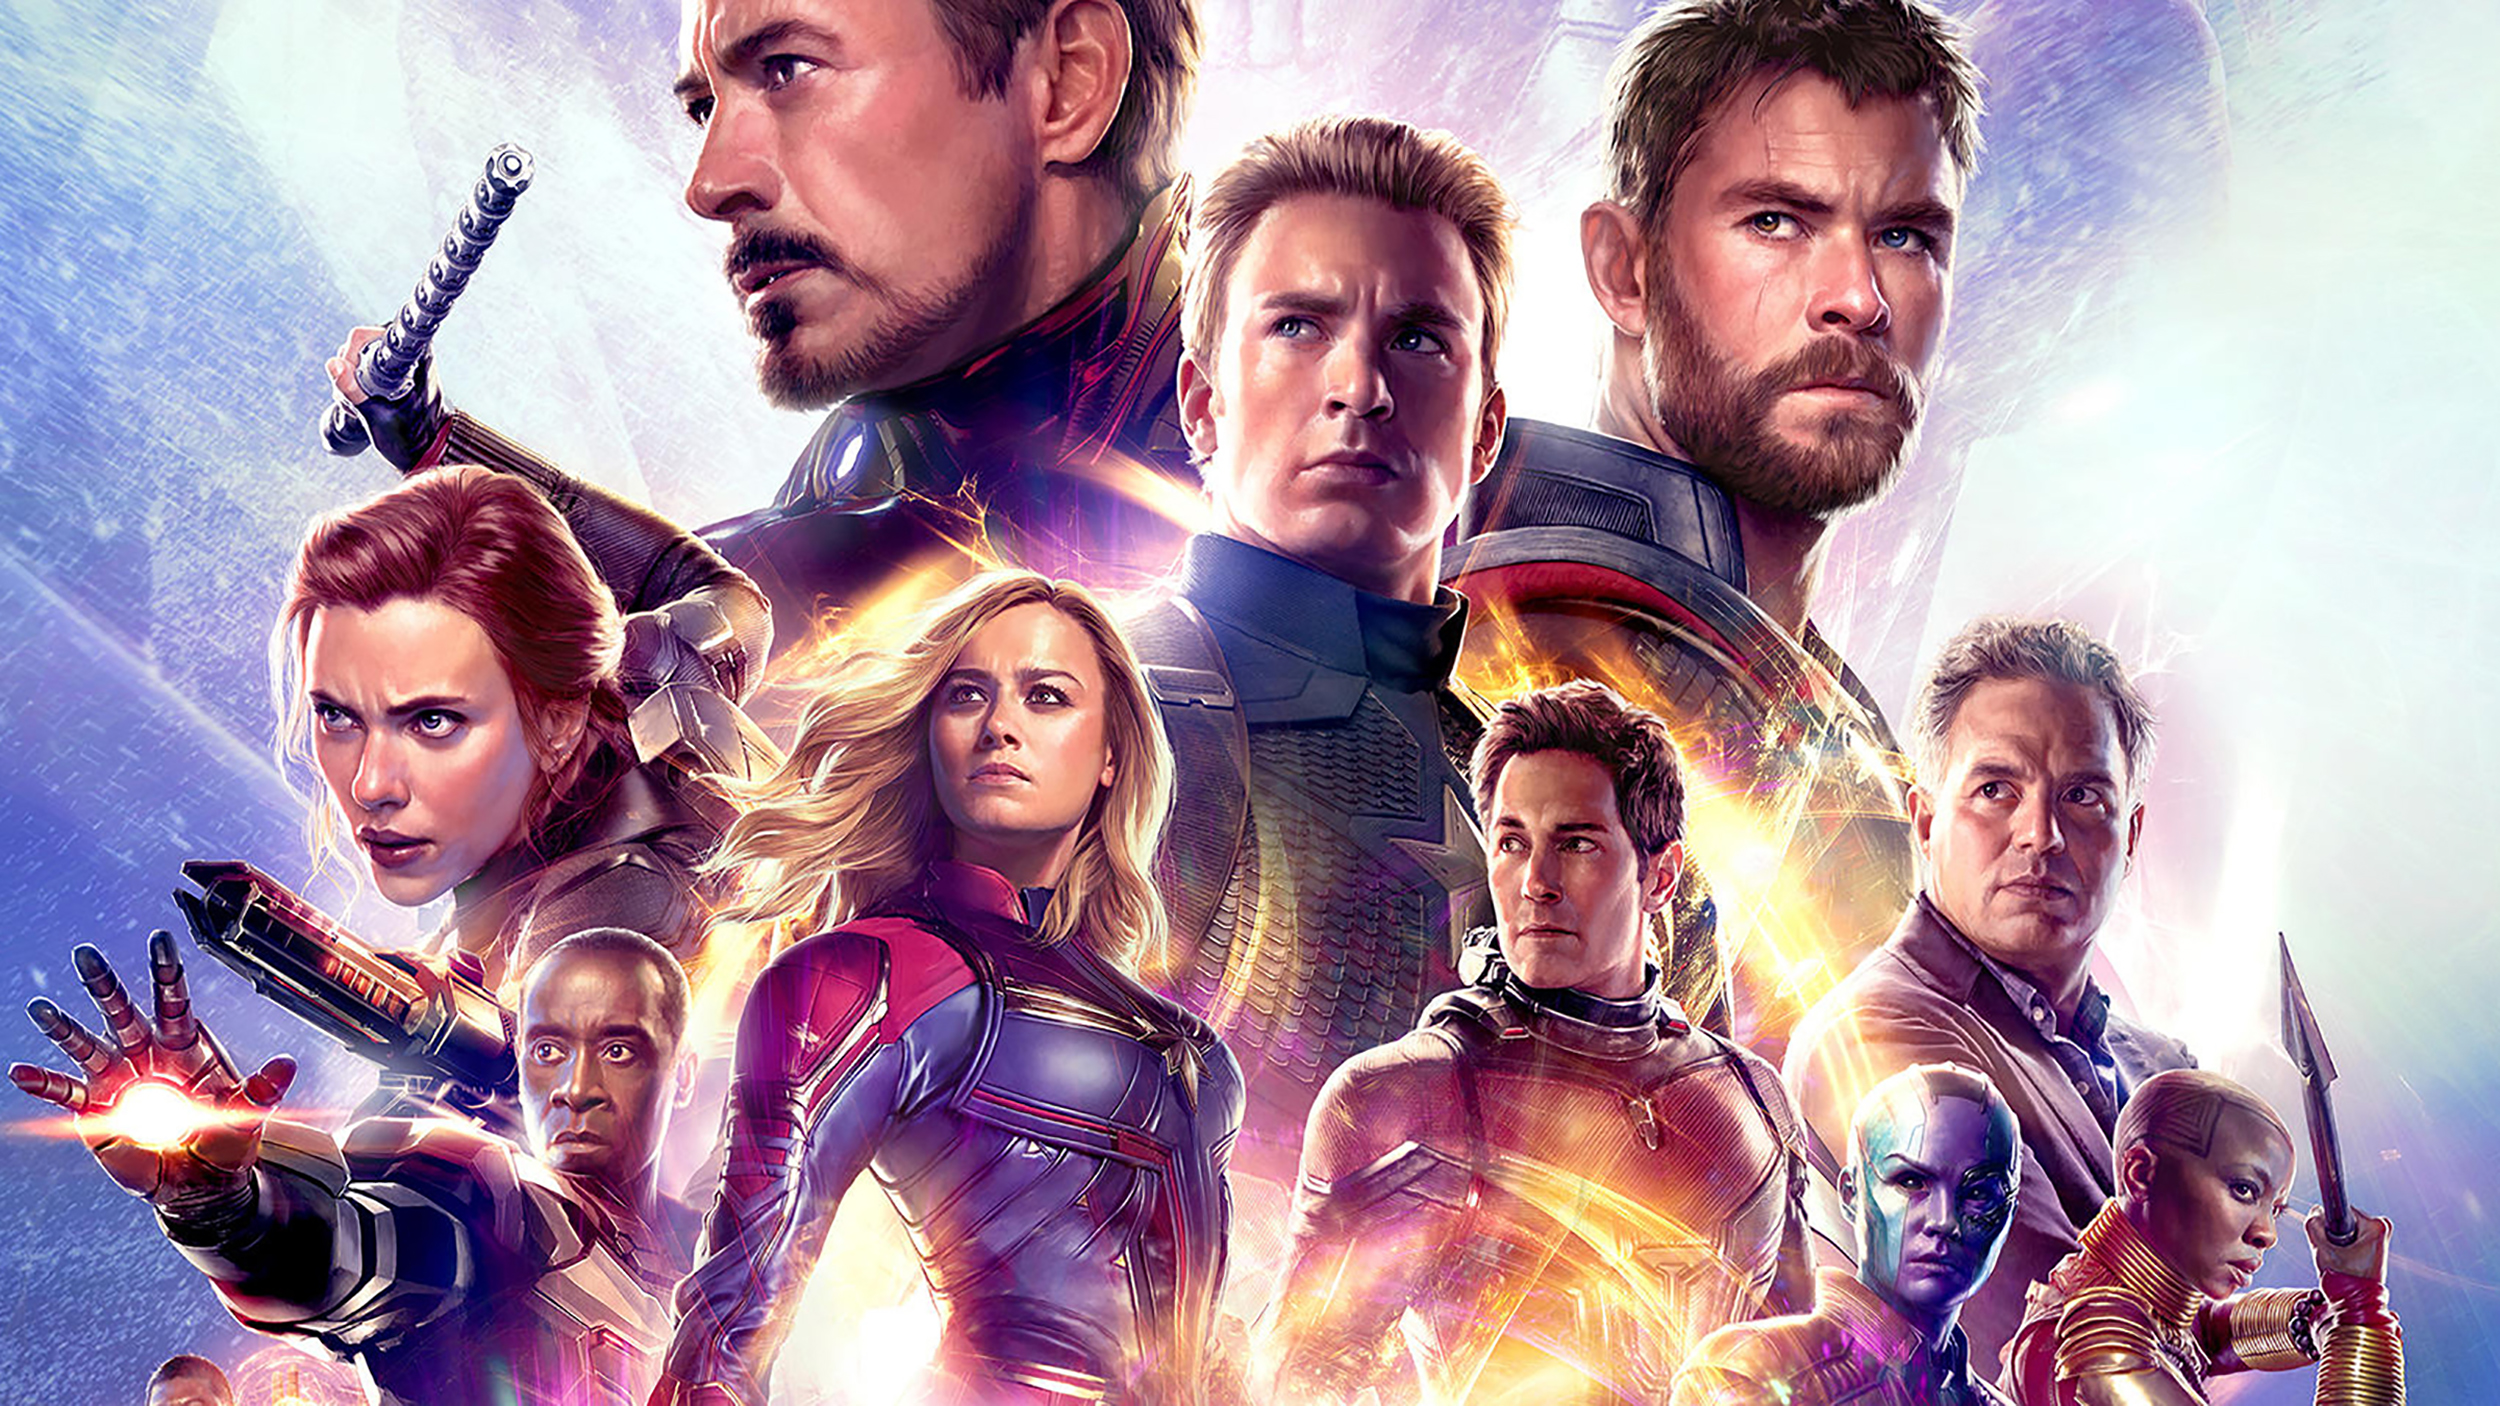 'avengers: endgame' has no end-credit scene, but it has this